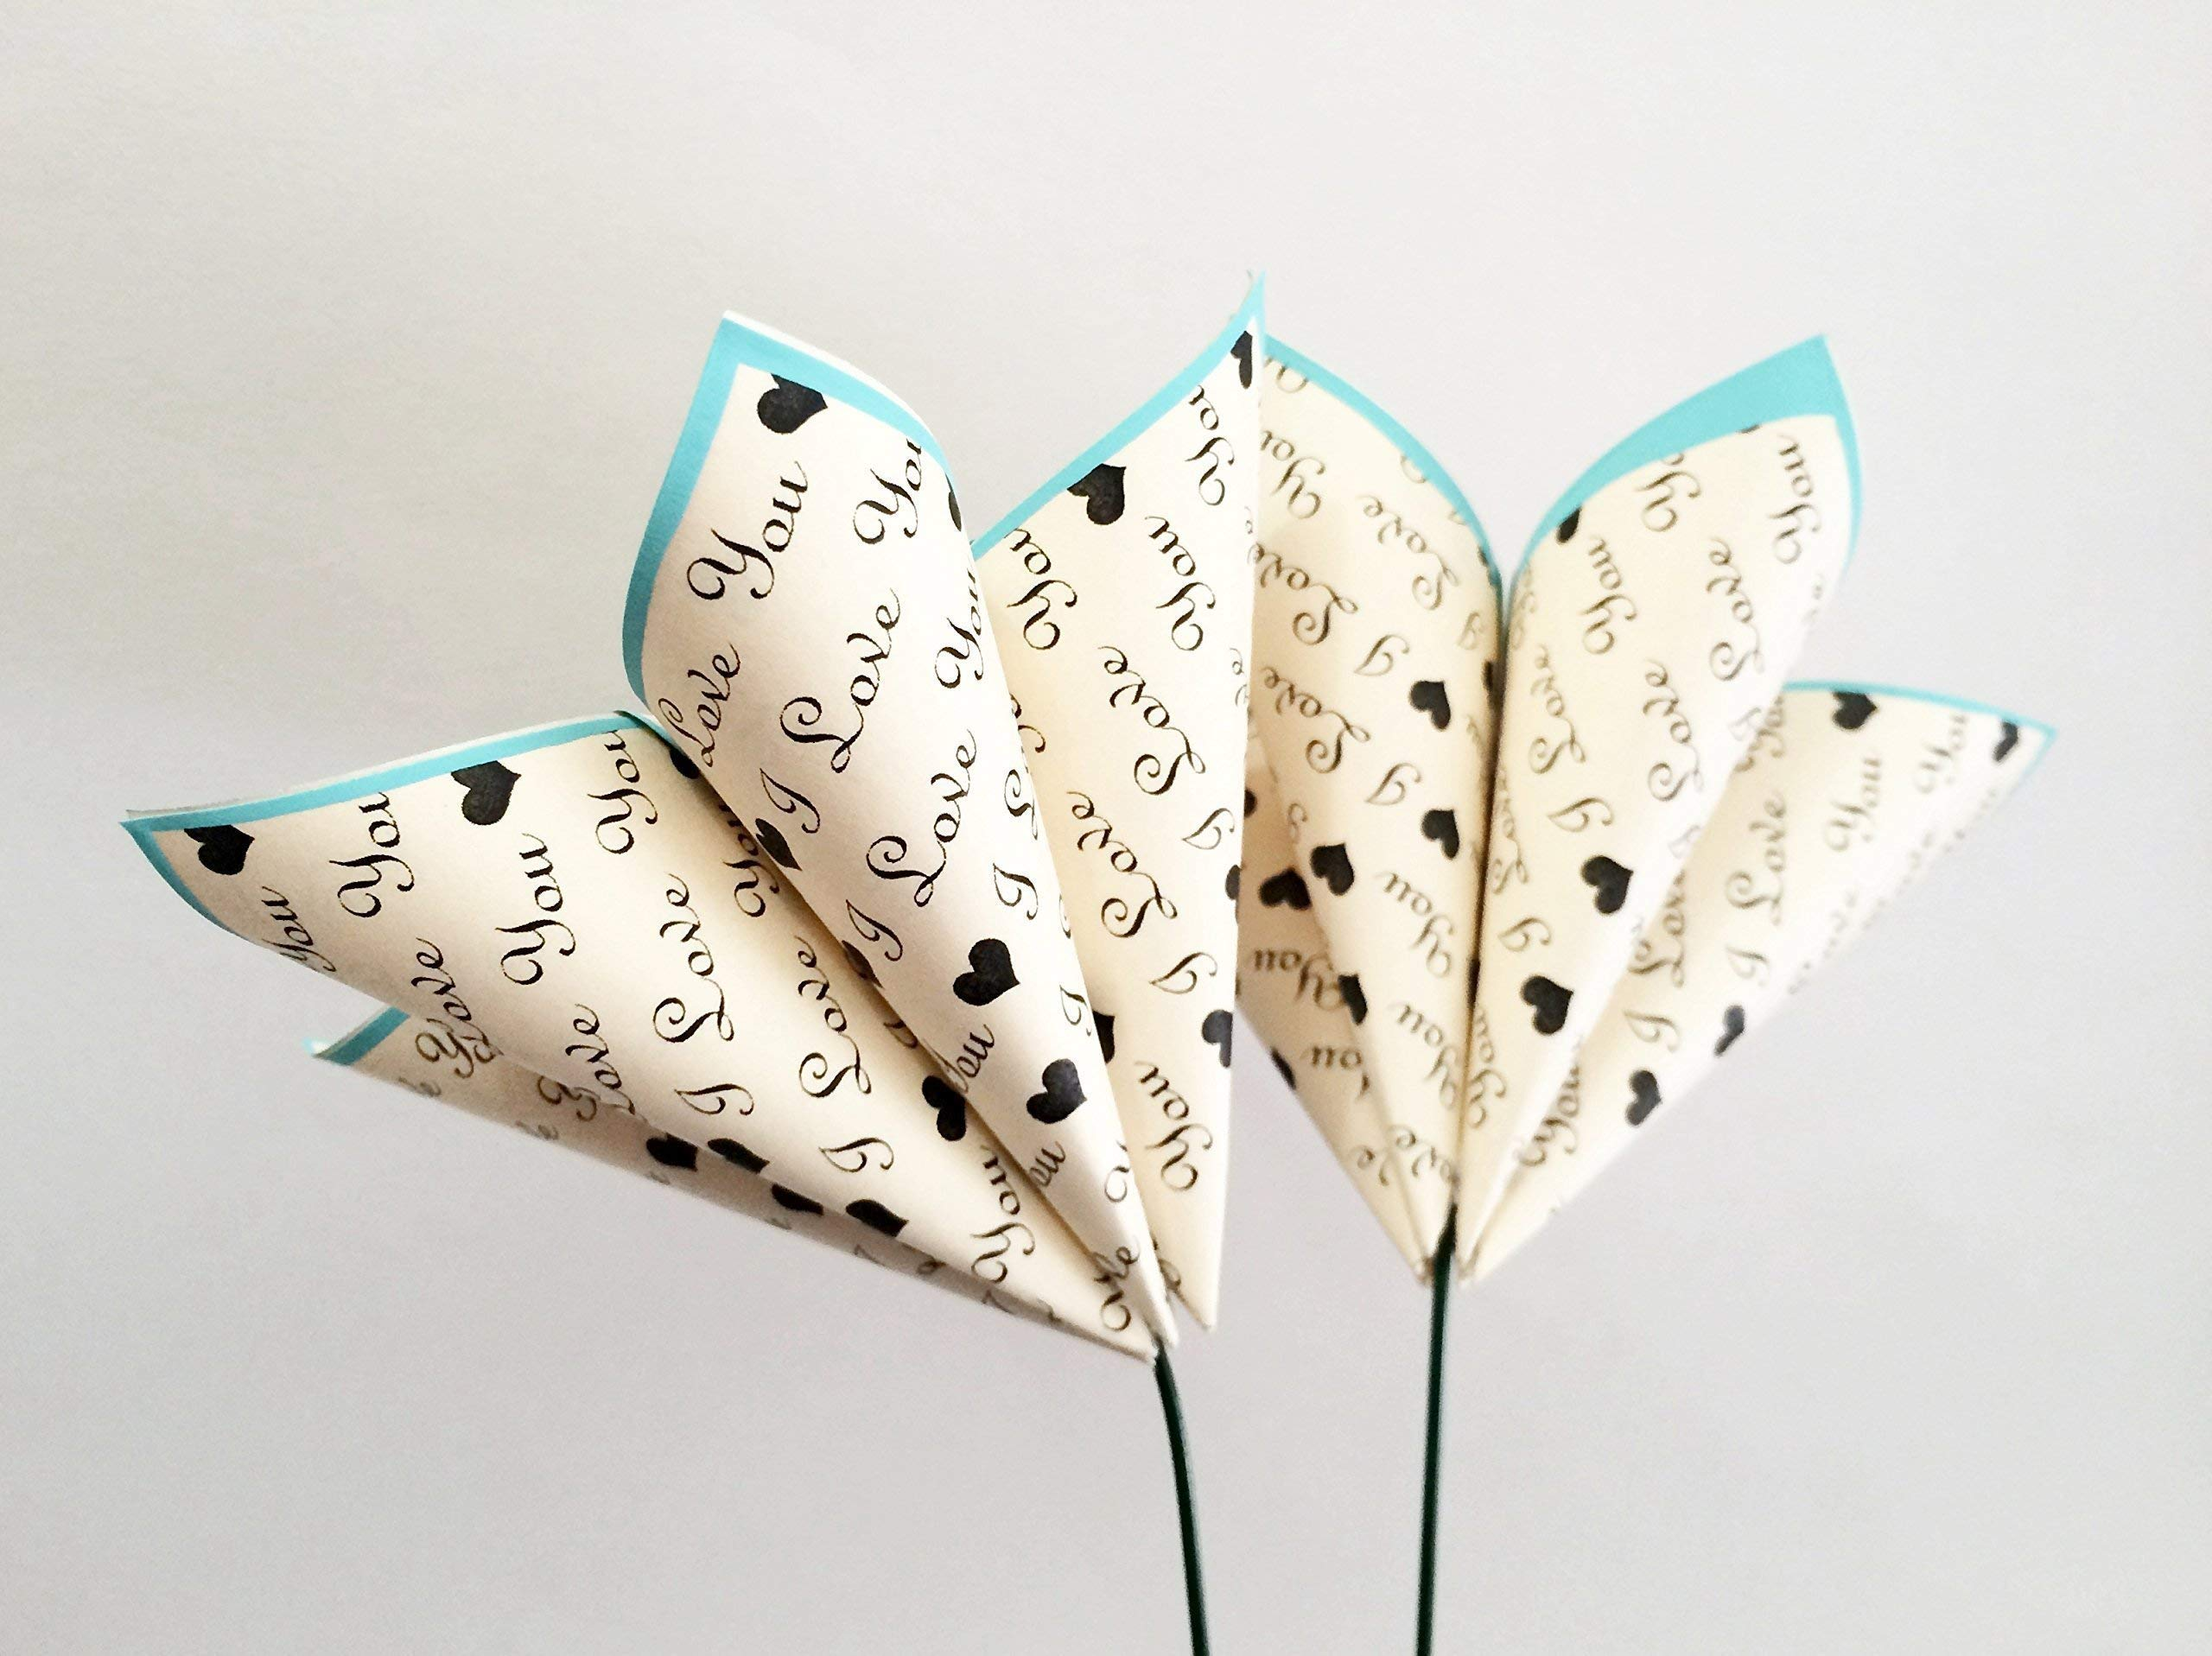 Set-of-2I-Love-You-paper-flowers-wedding-decor-anniversary-gift-date-night-origami-heart